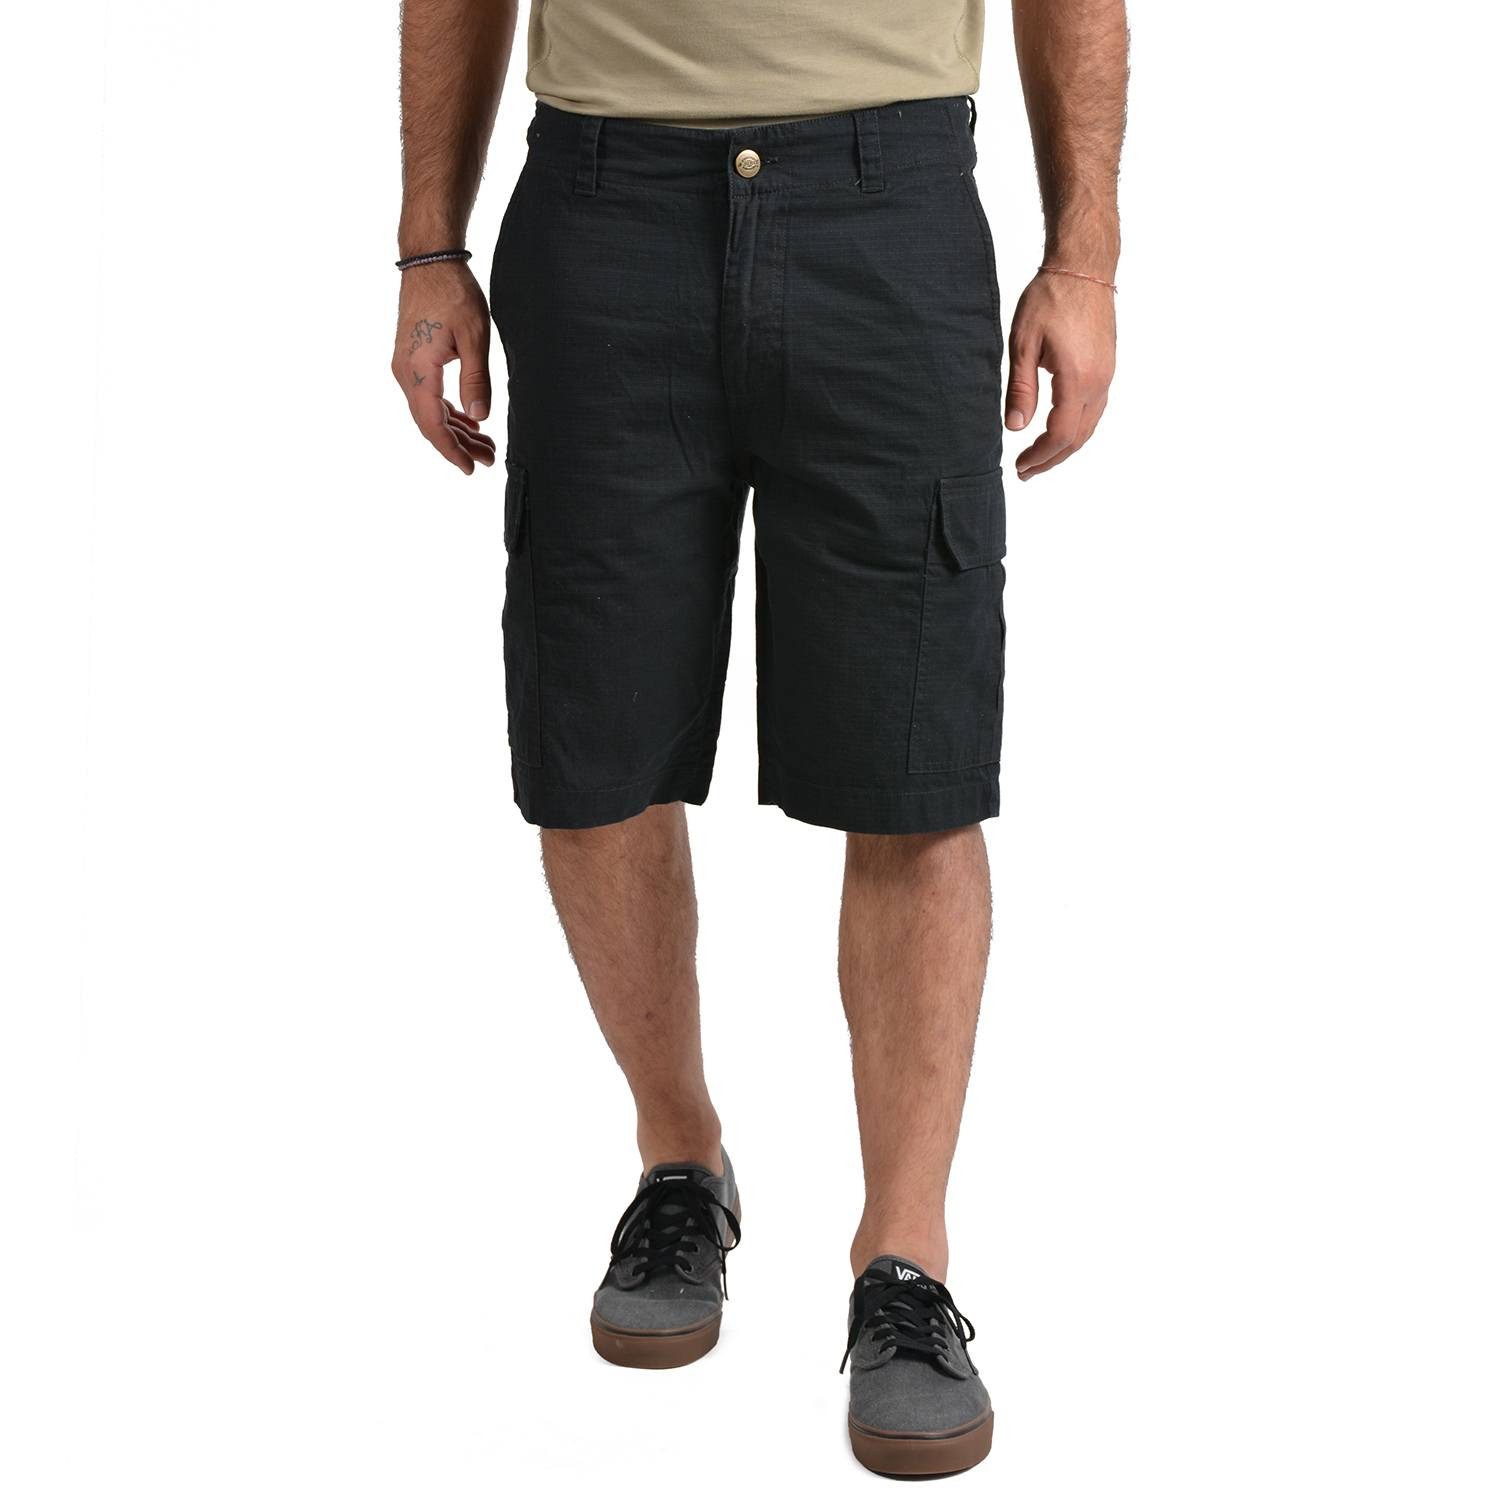 Dickies New York Men's Shorts